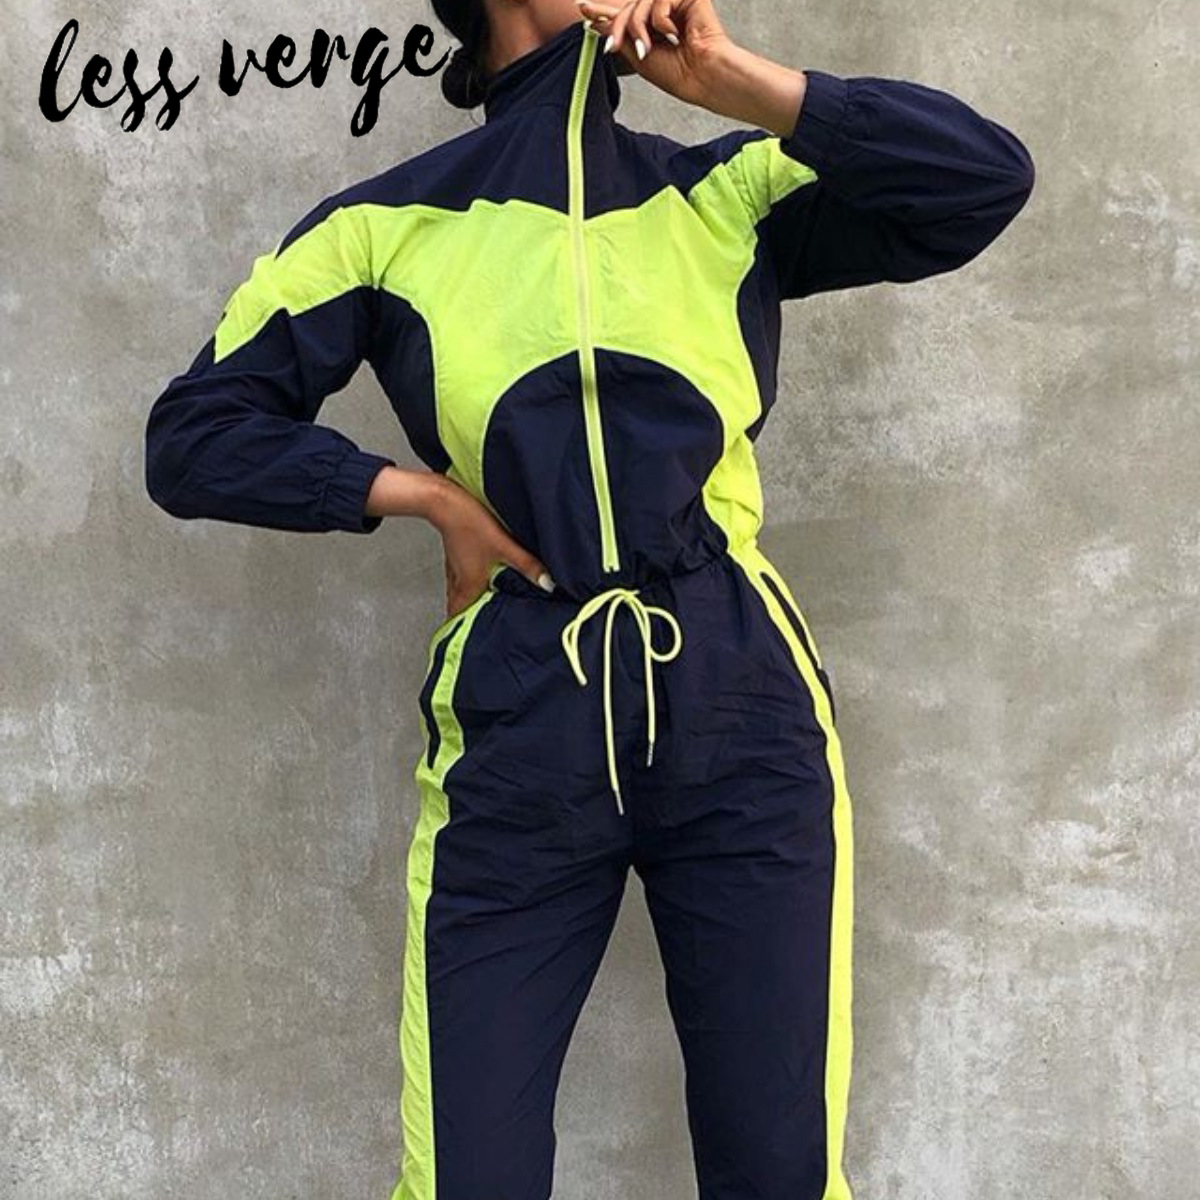 Lessverge Neon Patchwork Skinny Jumpsuits Rompers Women Long Sleeve Zipper Bandage Jumpsuit Sport Casual One Piece Overalls